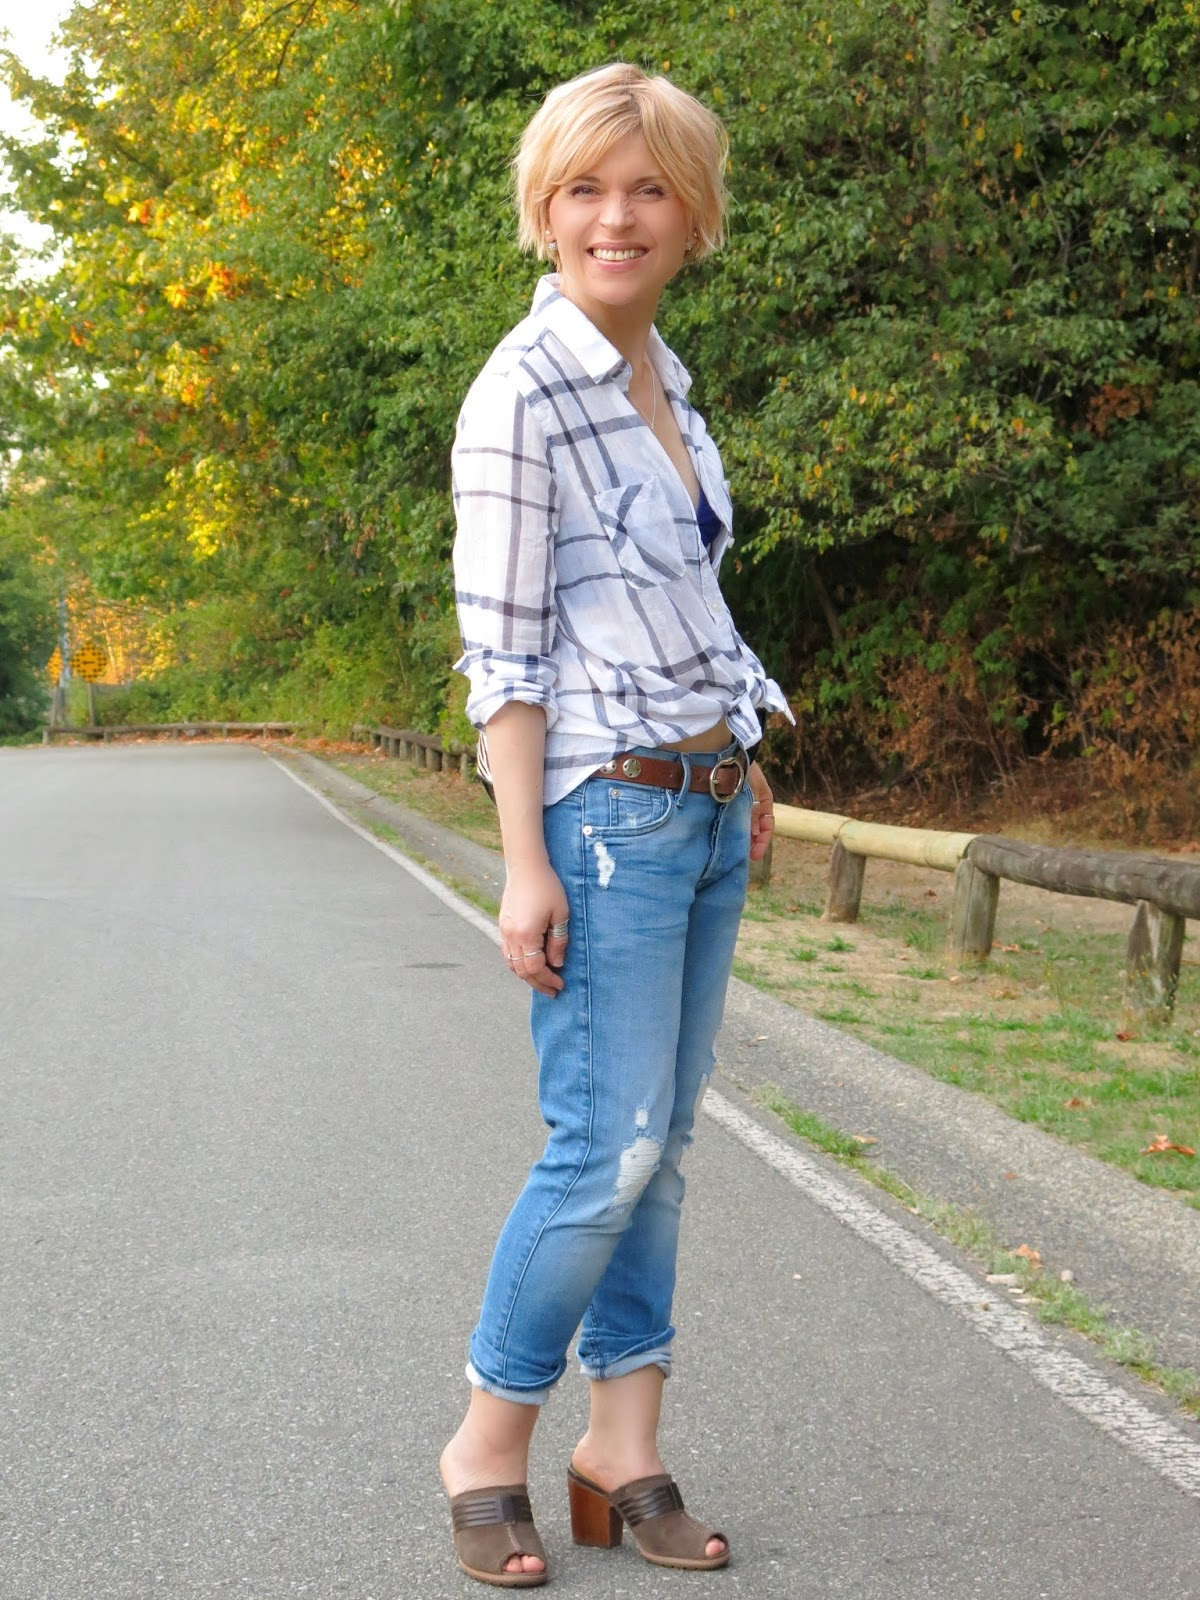 styling a white plaid shirt with boyfriend jeans and block-heeled Timberland mules